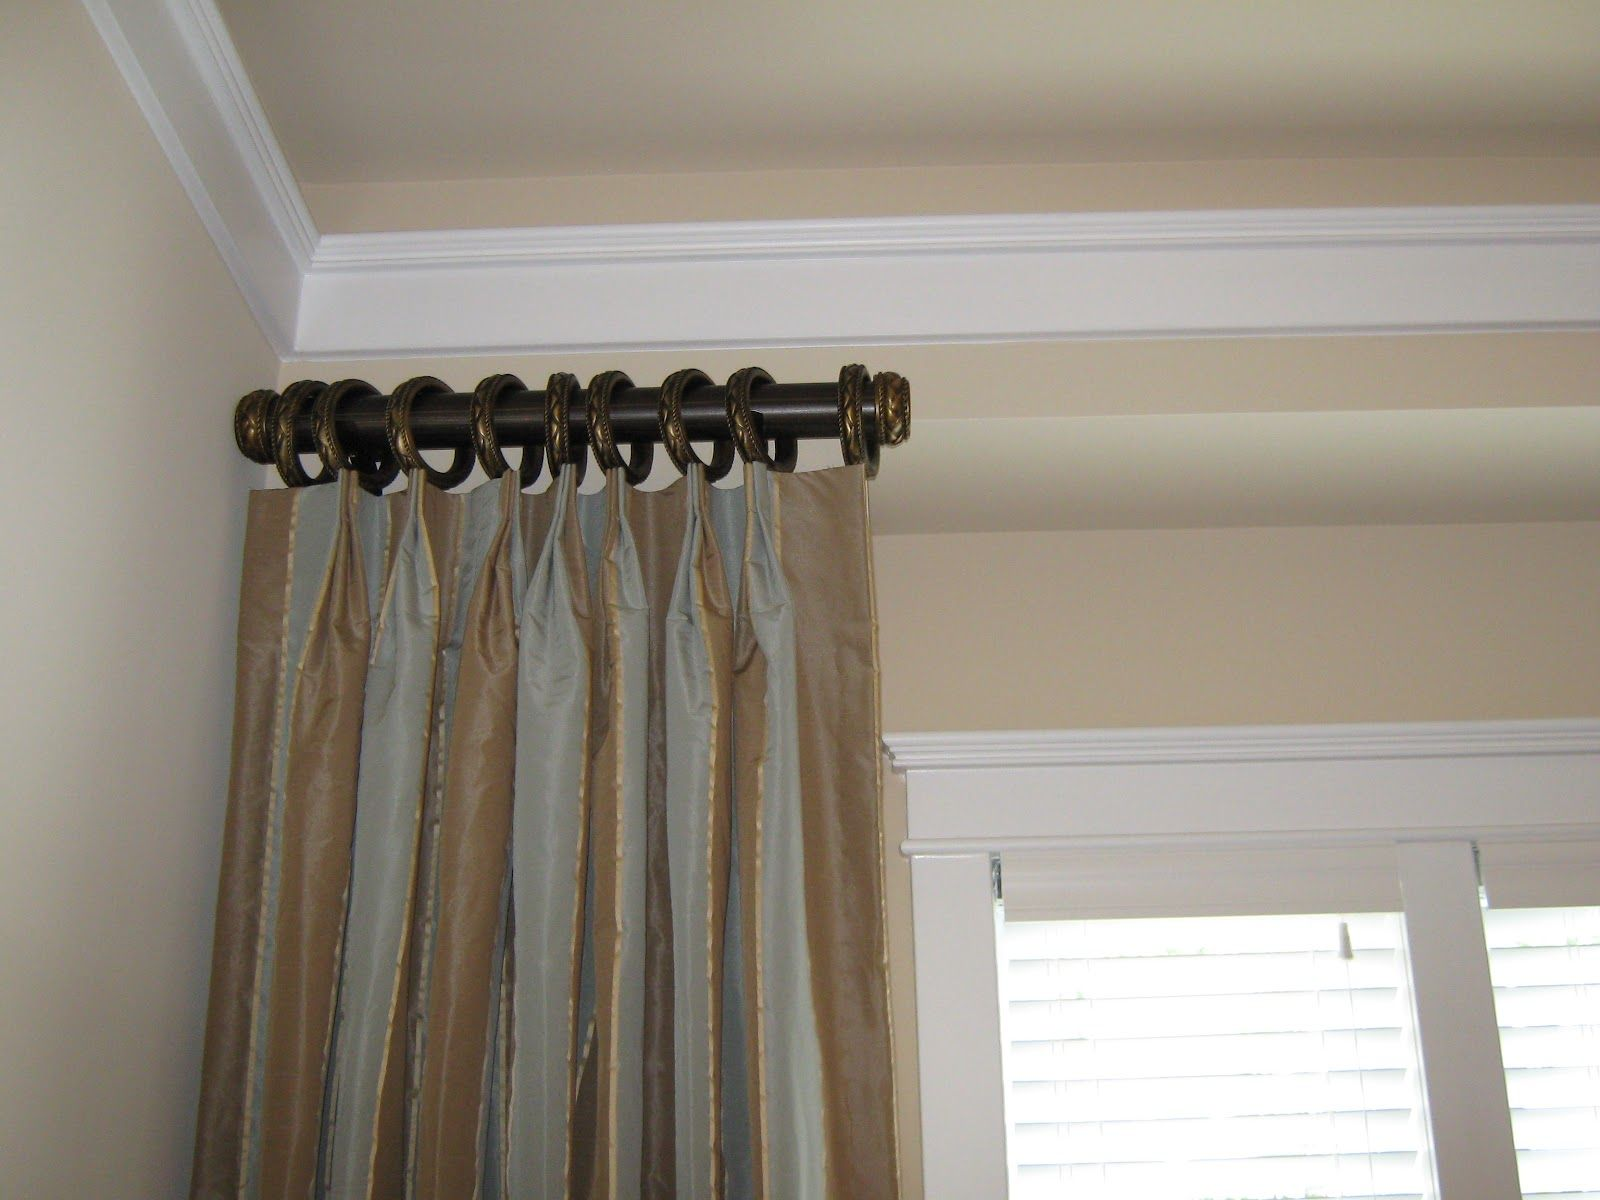 Mini curtain rods - Decorative Side Panel Curtain Rod Panels Is A Decorative Use Of Drapery